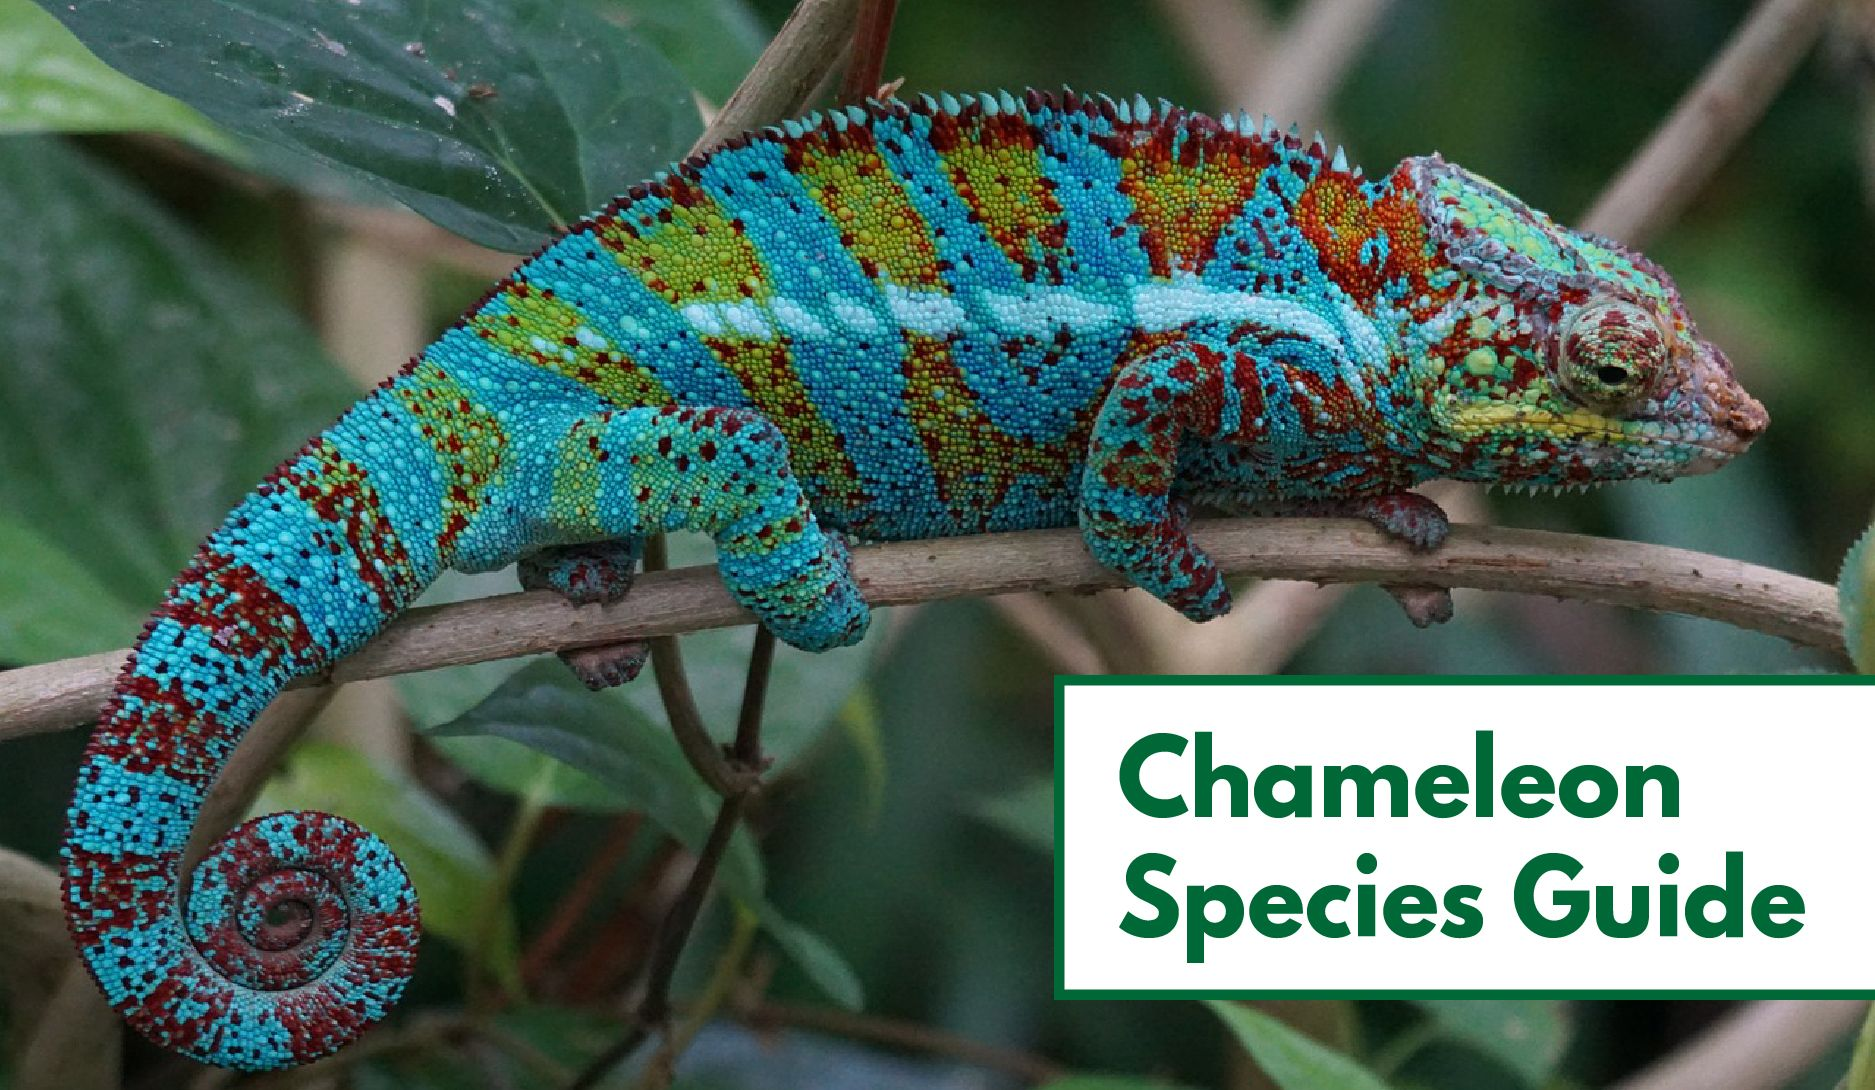 70+ Types of Chameleons (With Pictures): Chameleon Species Guide